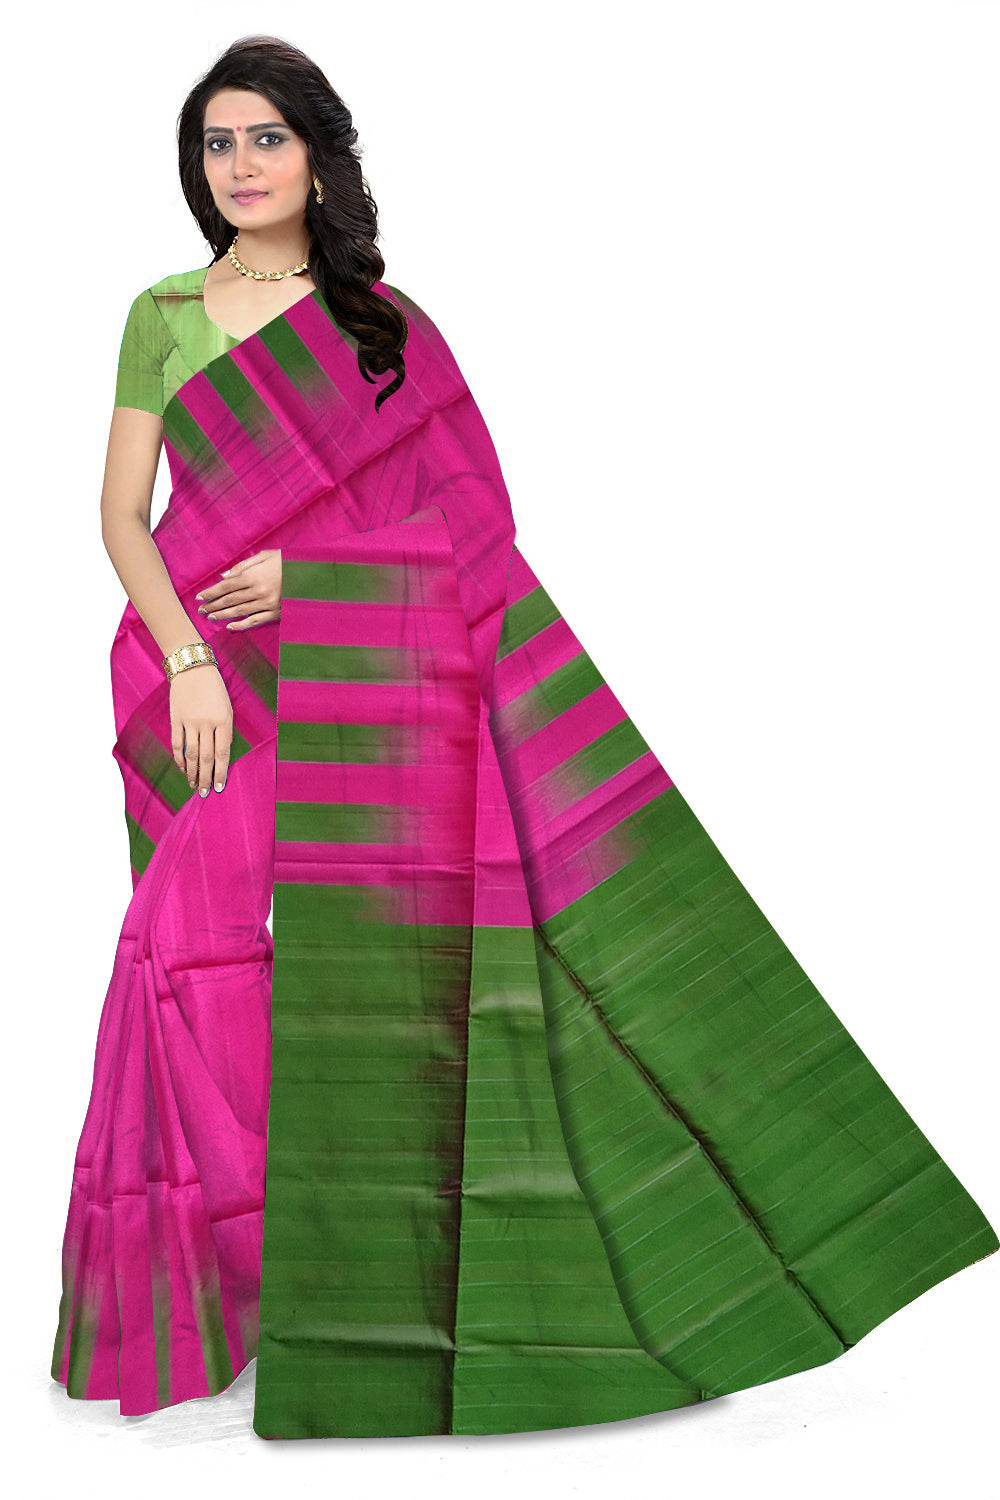 c76f230d4e Pretty Brilliant Rose & Green Lightweight Handloom Dye Soft Silk Saree  front view